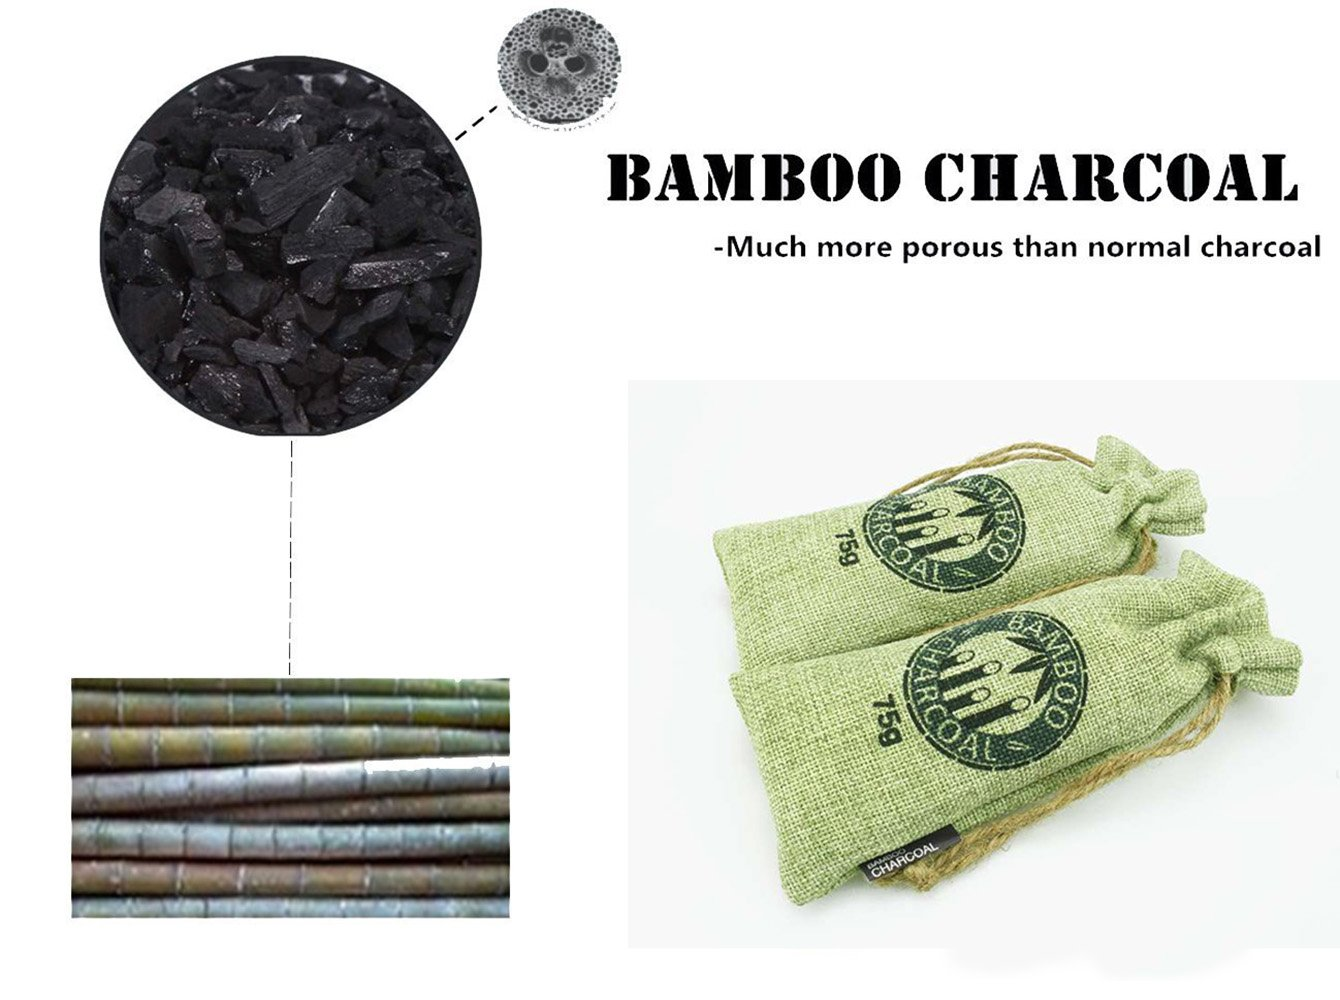 Bamboo Charcoal Bag, NewList Natural Activated Eco-friendly Air Purifying Bag Room PurifierOdor Remove for Closets, Cars, Rooms, Pet Areas, Gym Bag, Boxing Gloves, Bathroom, 2Pack 2 x 75g